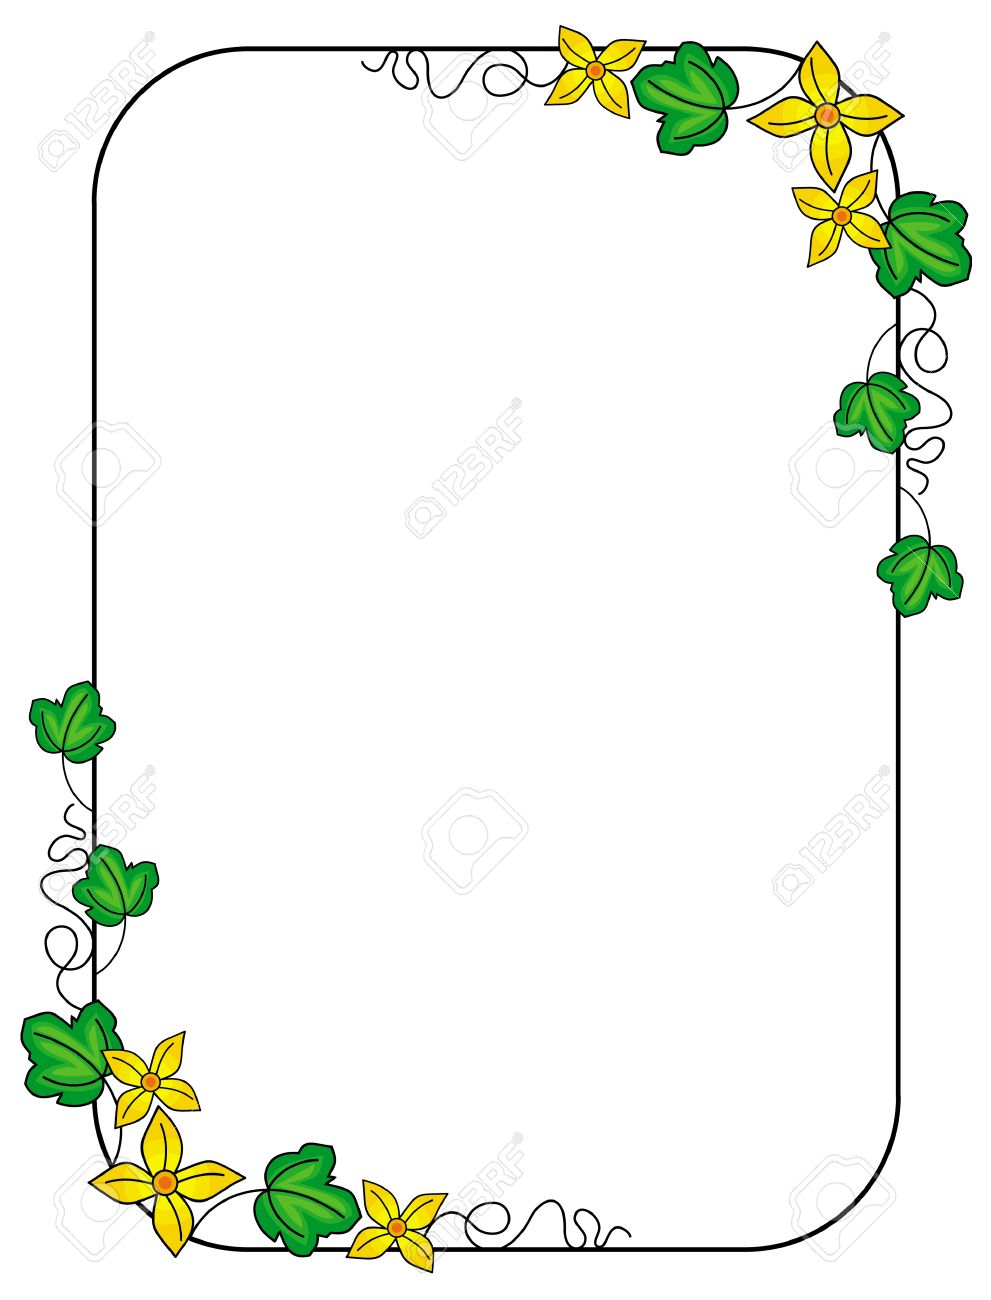 Cute Frame With Green Leaves And Yellow Flowers Royalty Free ...